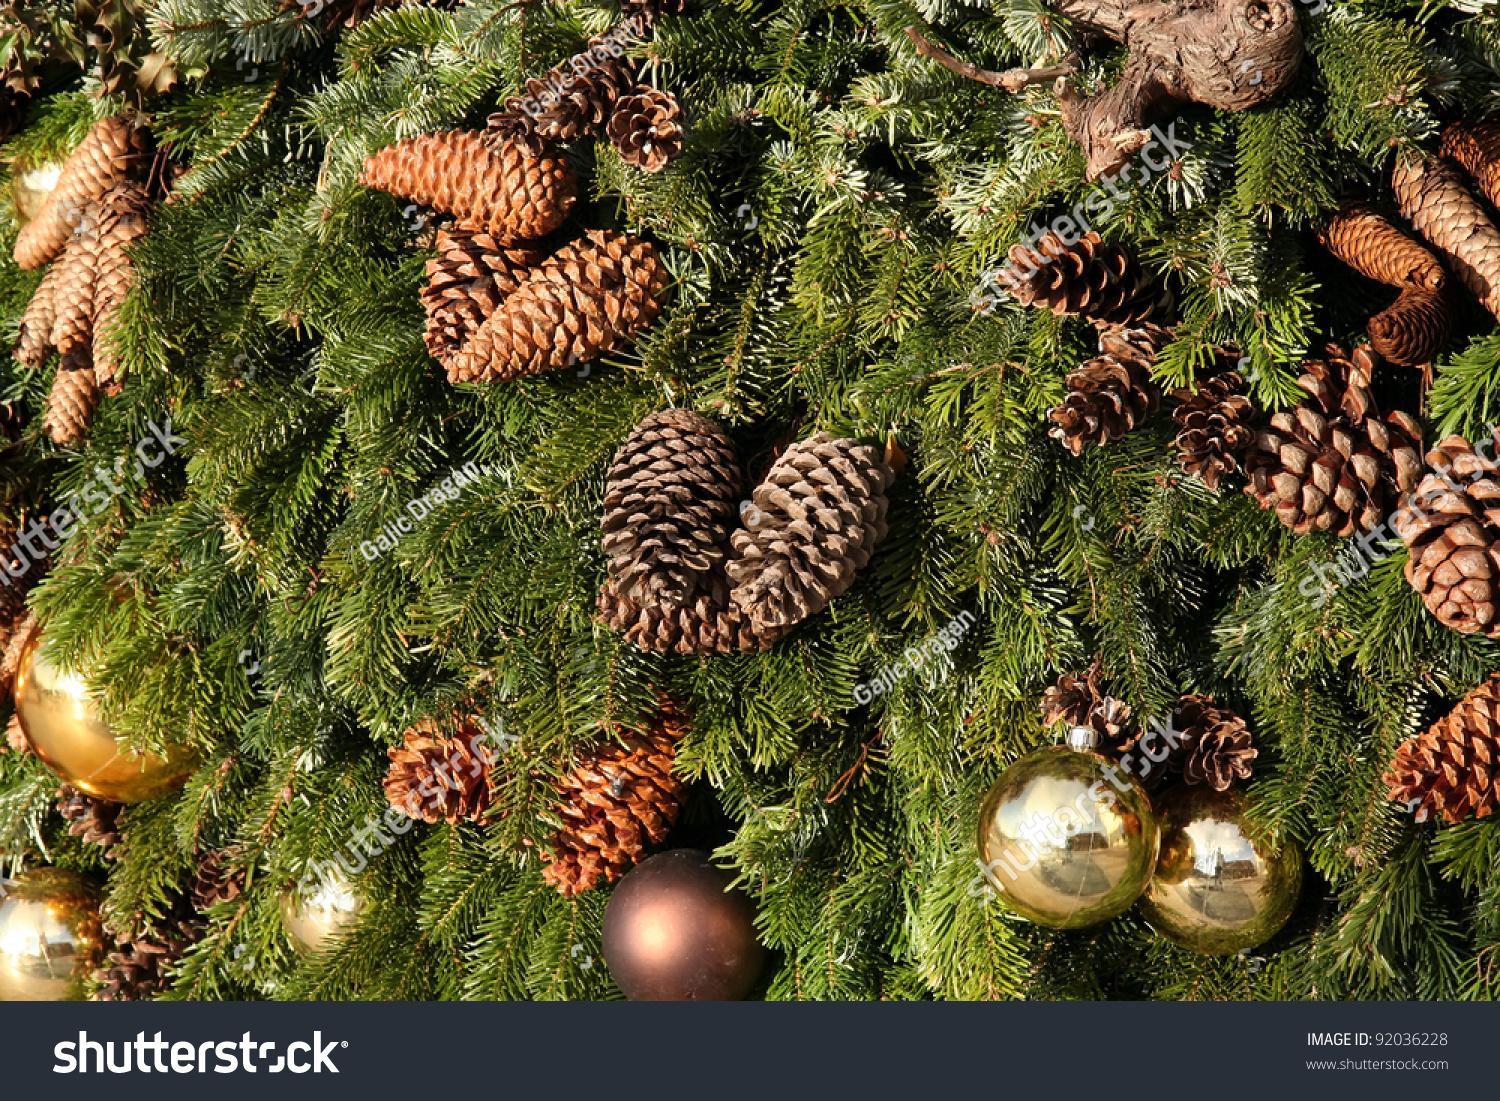 Christmas tree decorations christmas decorations with for Decorating pine cones for christmas tree